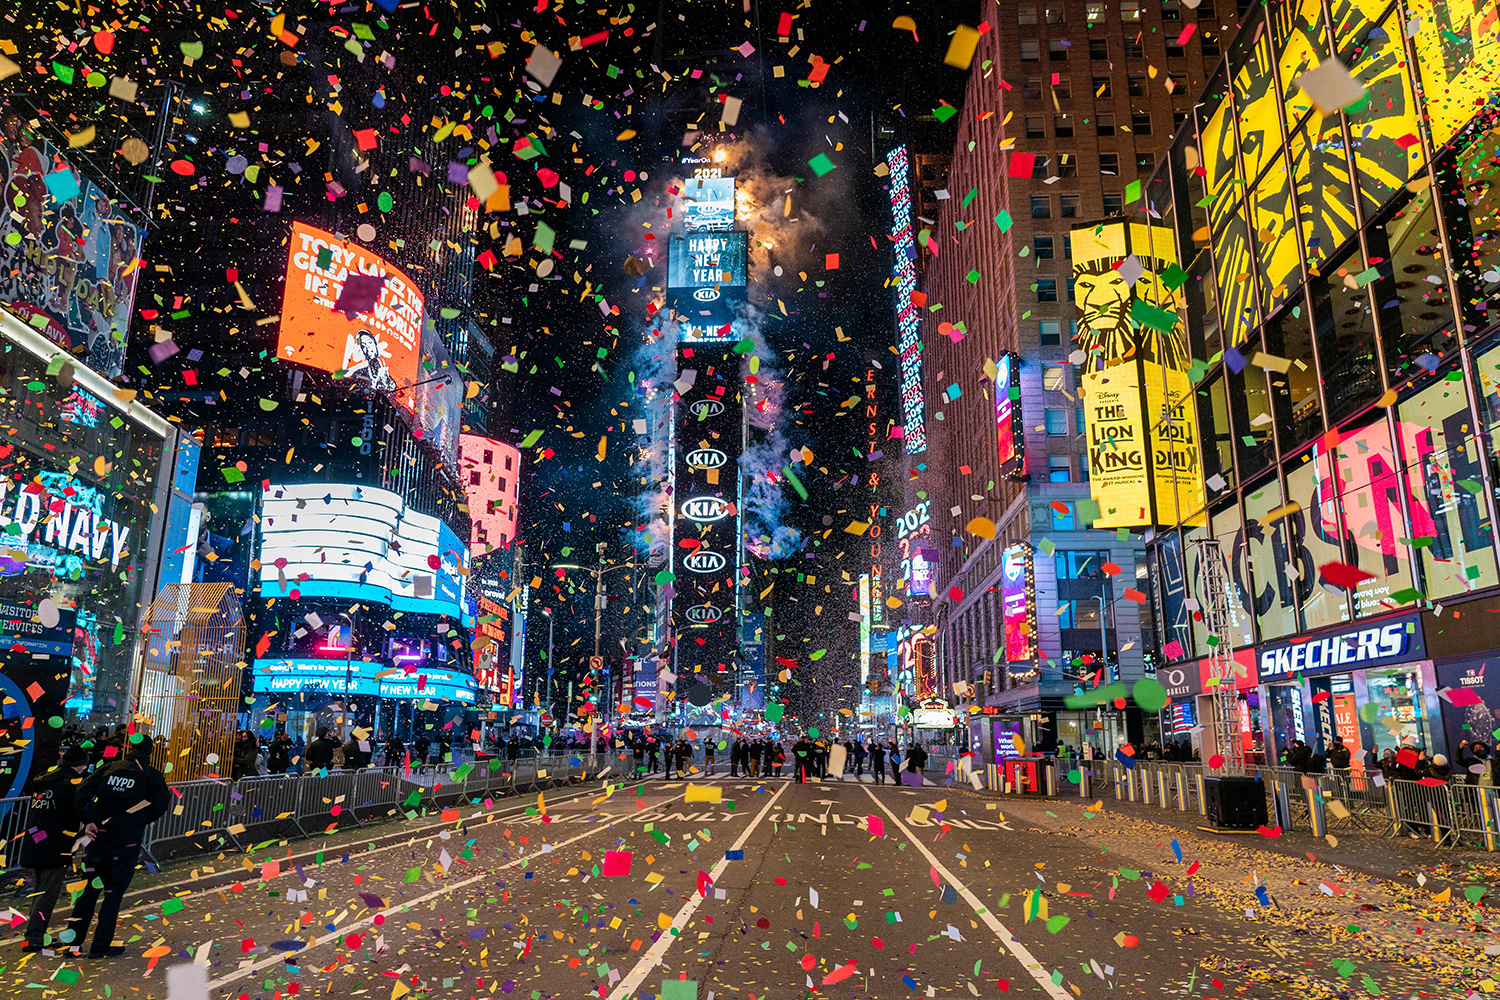 The ball drops to ring in the new year in a mostly empty Times Square in New York City on Jan. 1. COREY SIPKIN/AFP via Getty Images